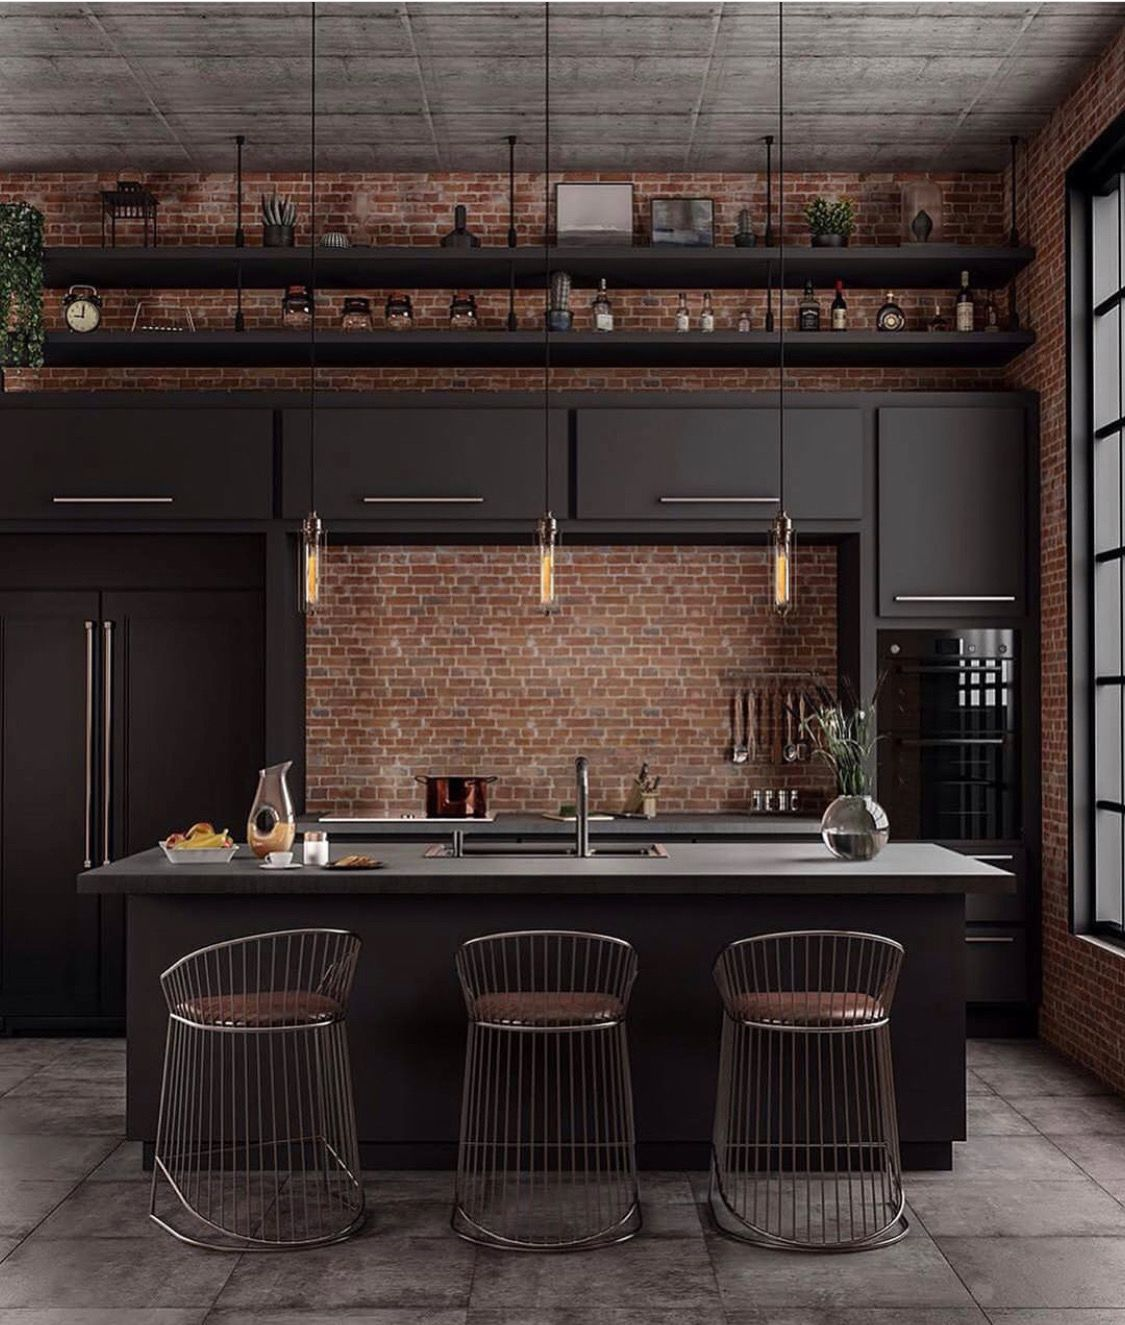 Pin By Victoria Pons On Houses Industrial Decor Kitchen Industrial Kitchen Design Industrial Style Kitchen